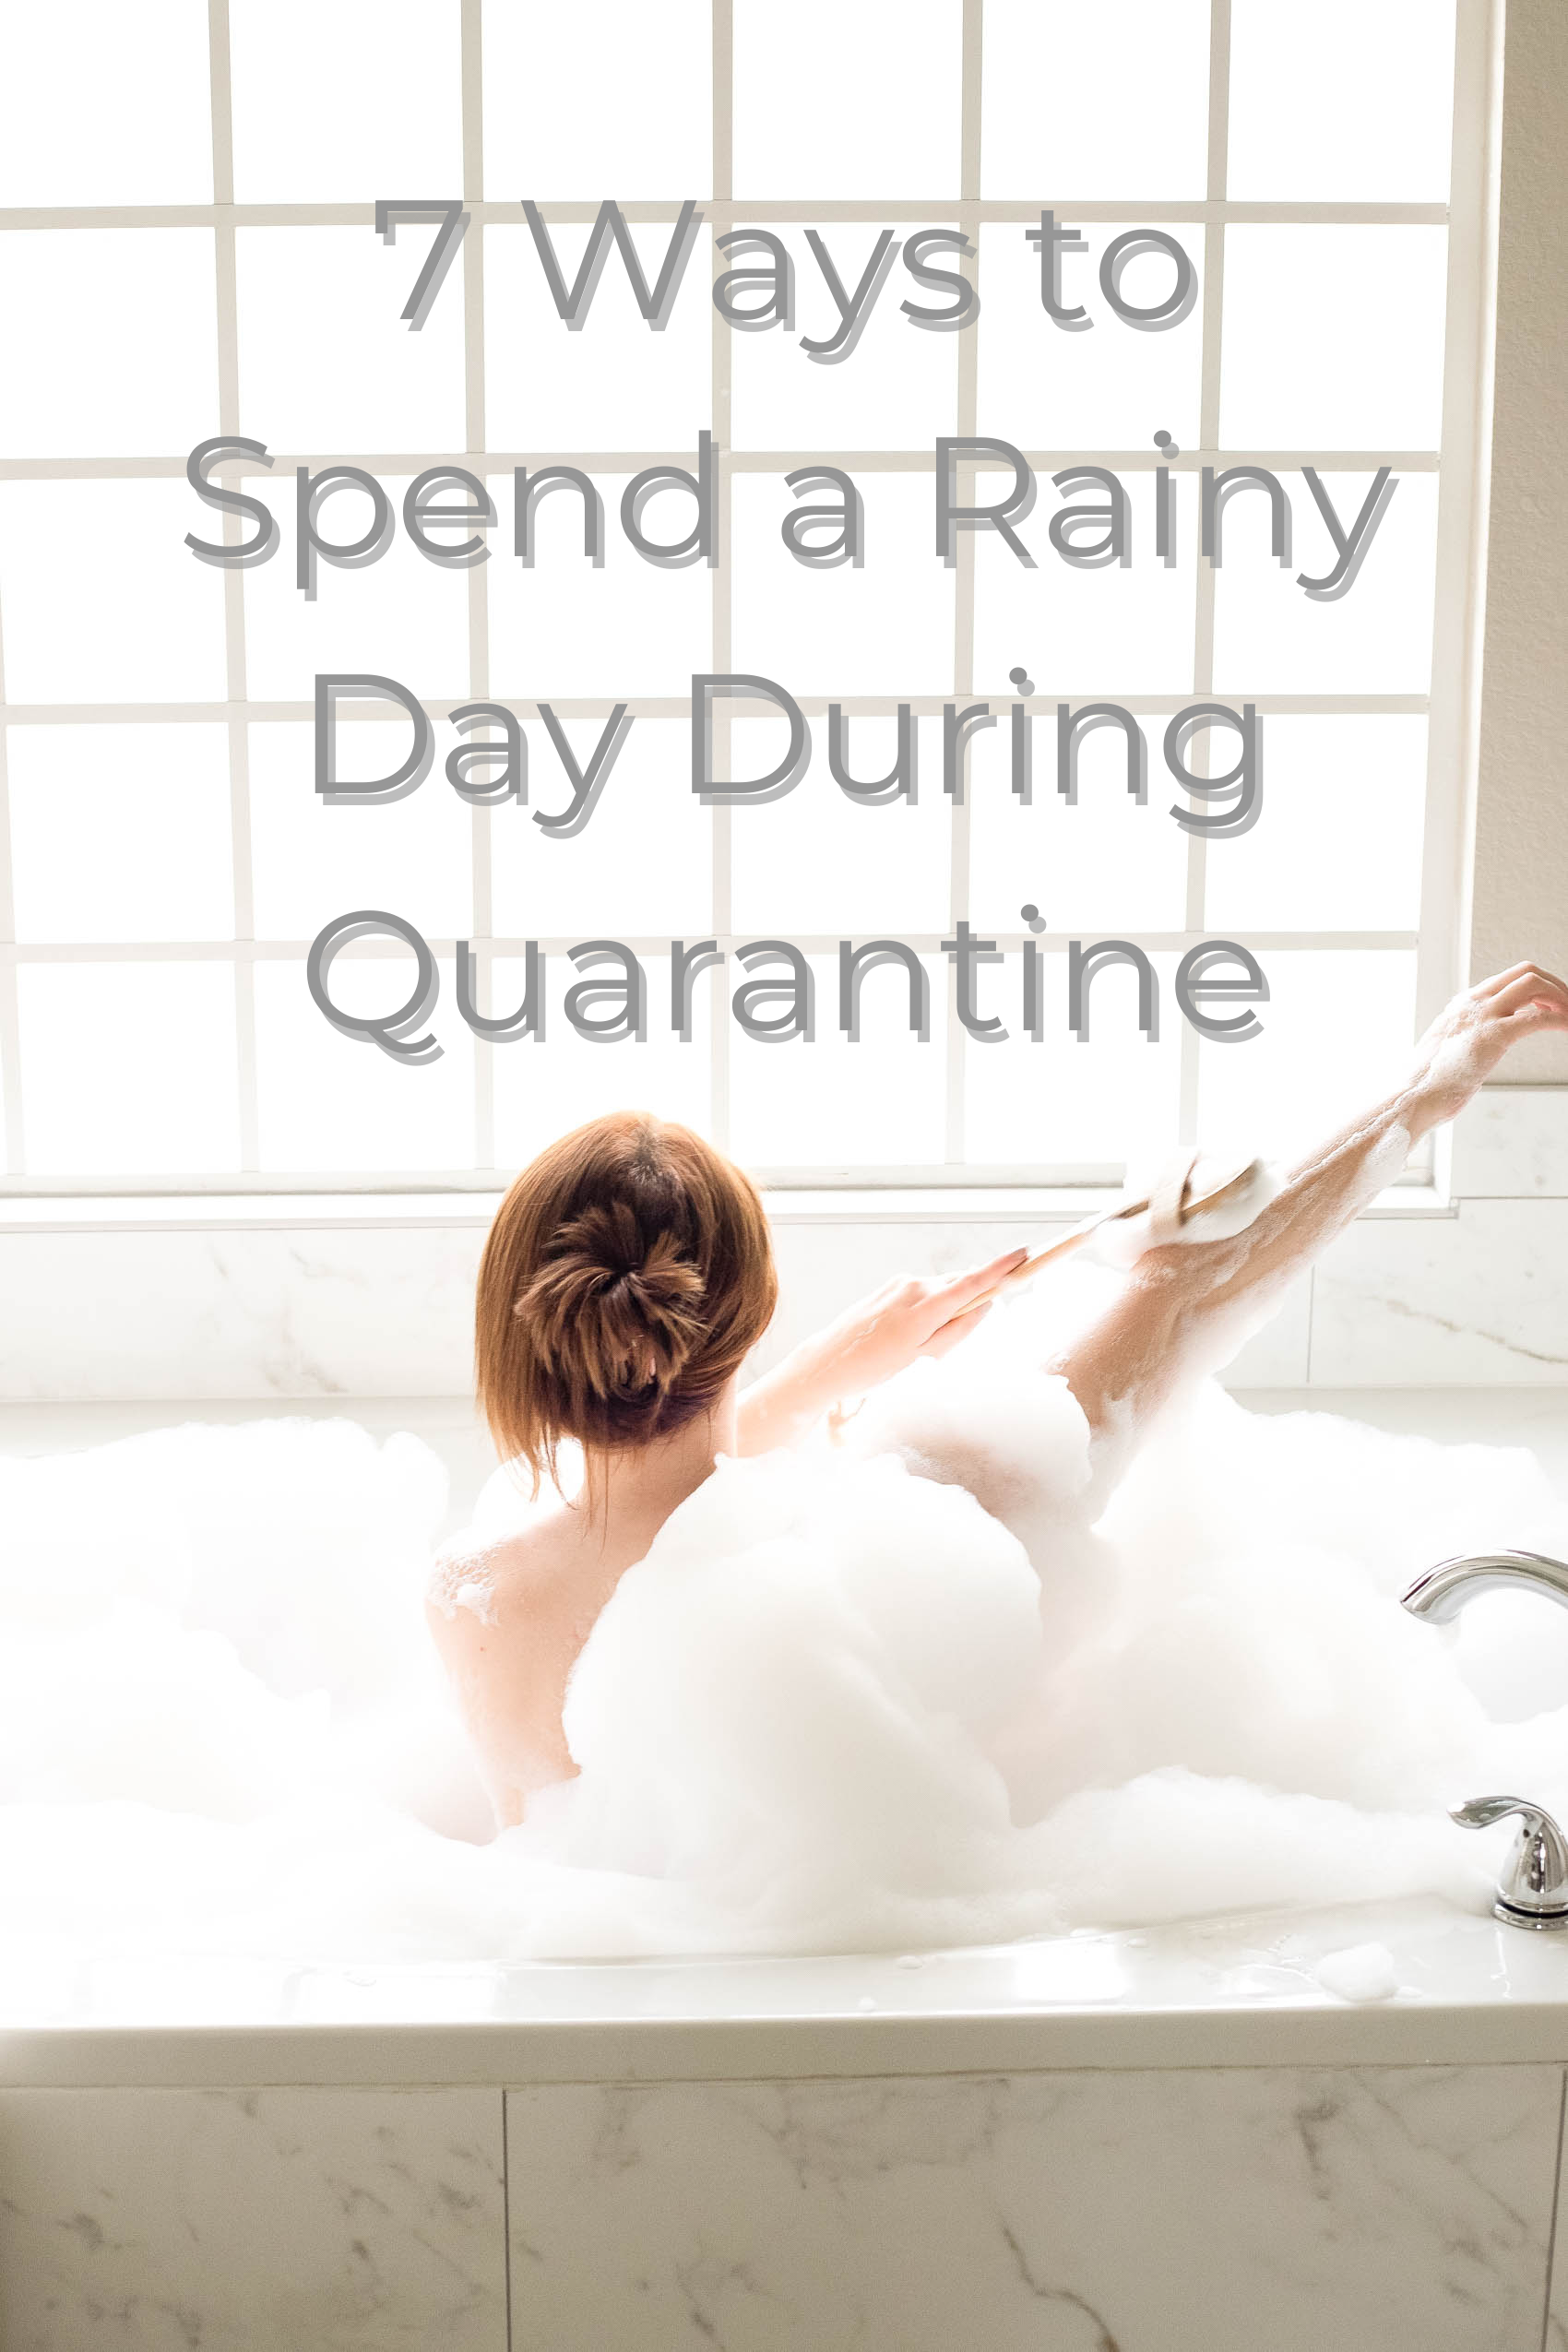 7 Ways to Spend a Rainy Day During Quarantine